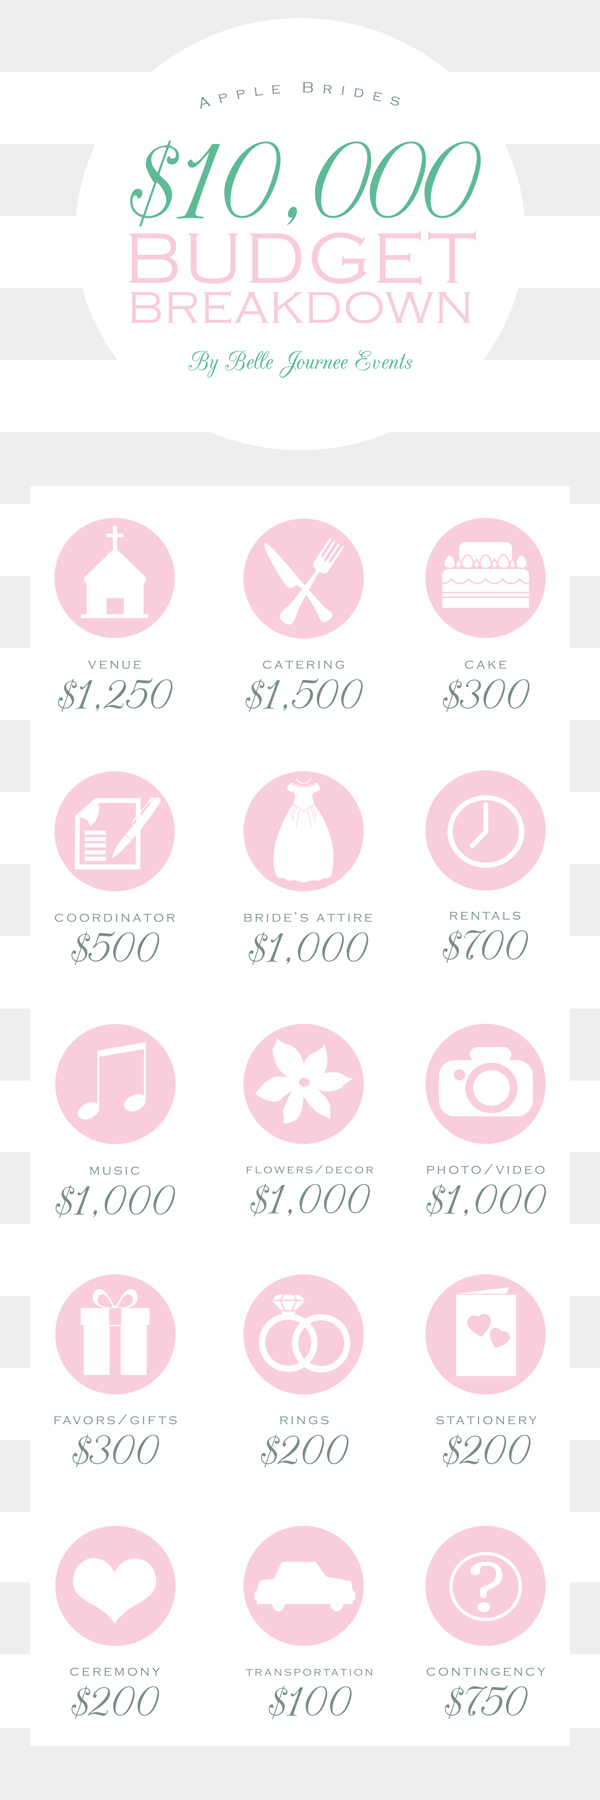 budget breakdown for a 10 000 wedding